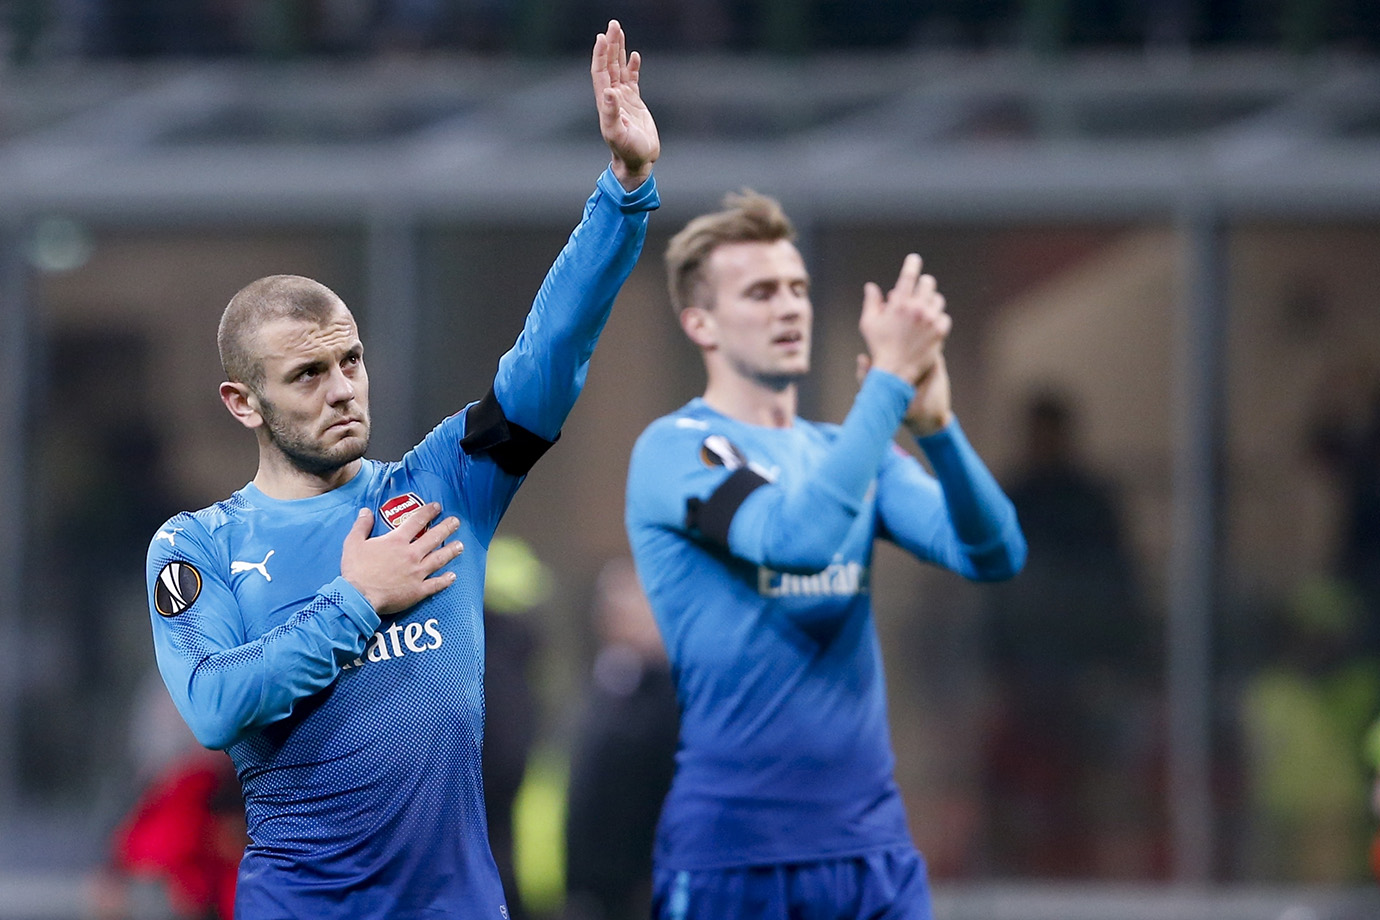 Arsenal's Jack Wilshere waves to fans at the end of the match.